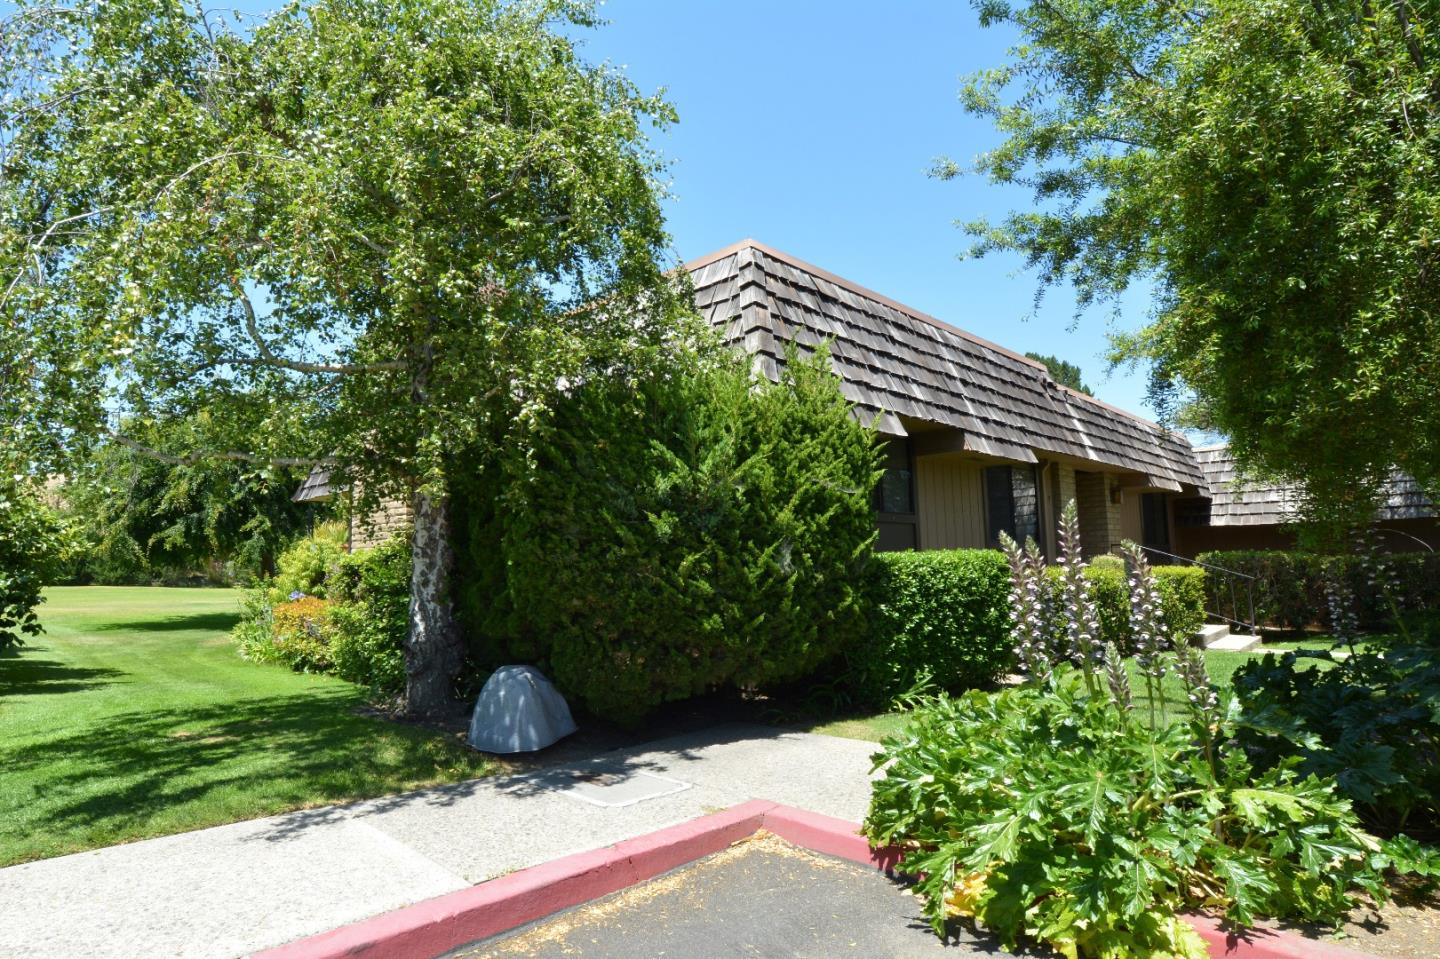 Additional photo for property listing at 23799 Monterey Salinas Highway  Salinas, California 93908 United States